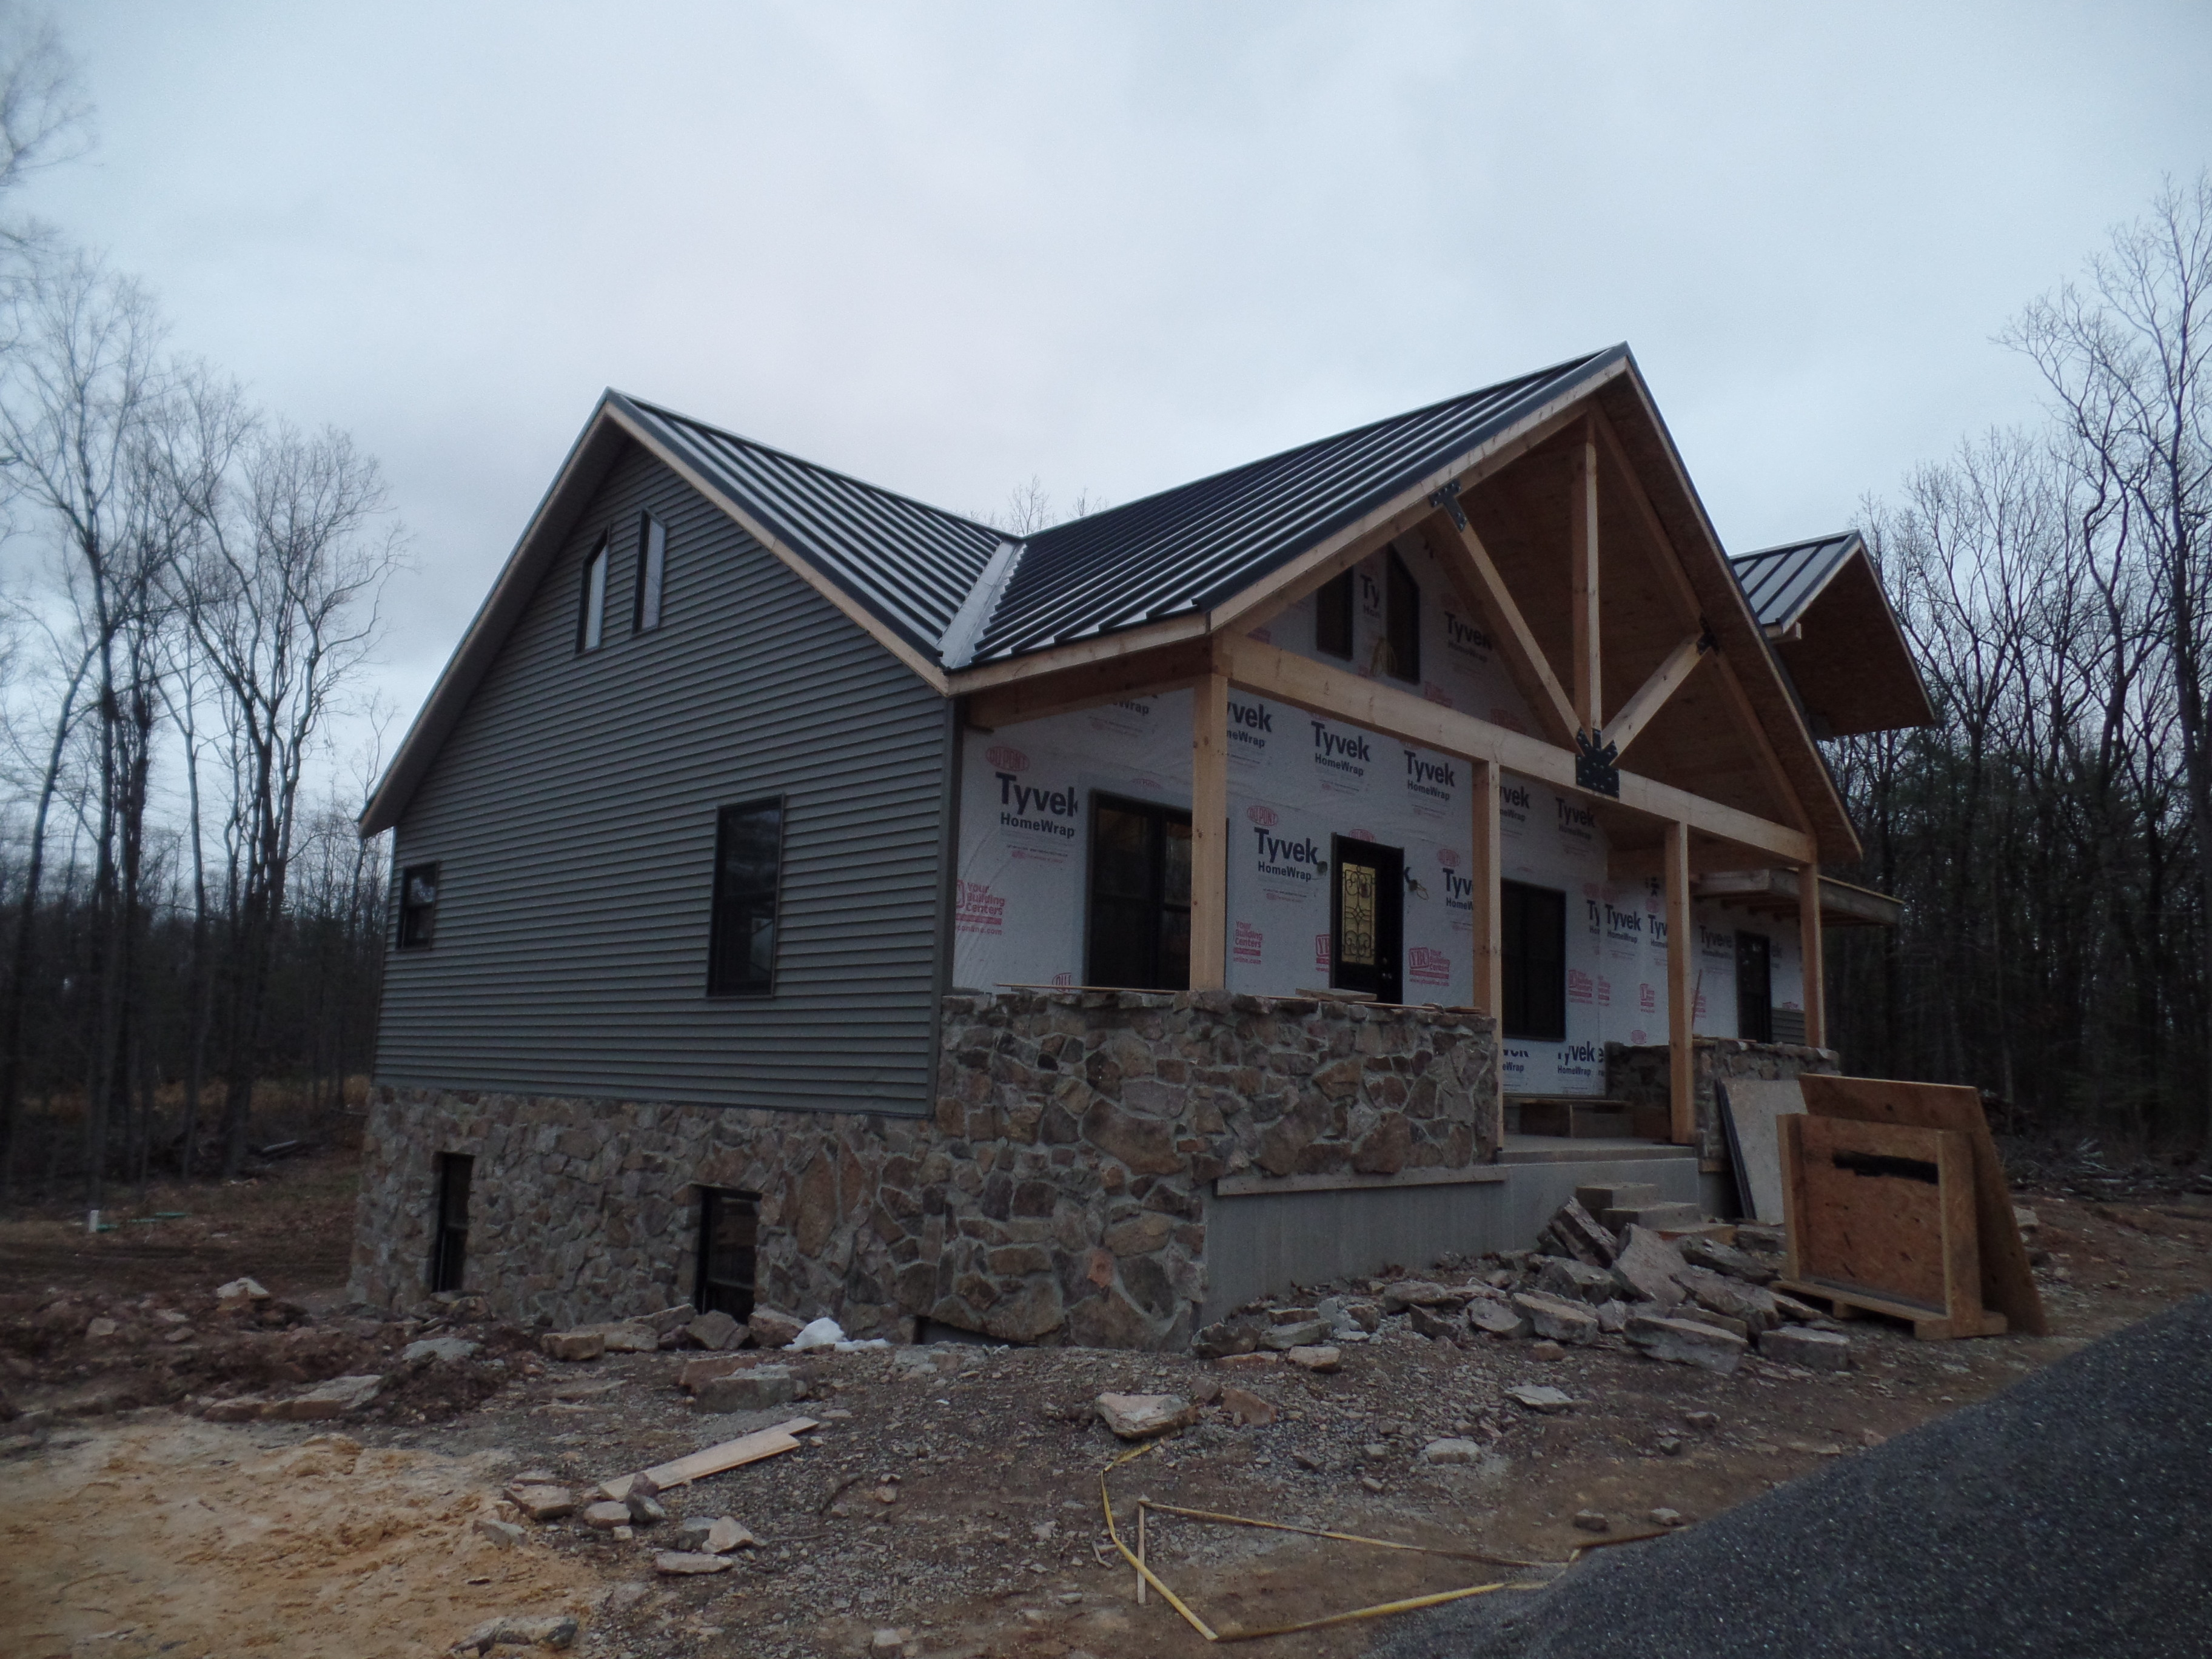 Custom Post and Beam Home - Under Construction: Part 12